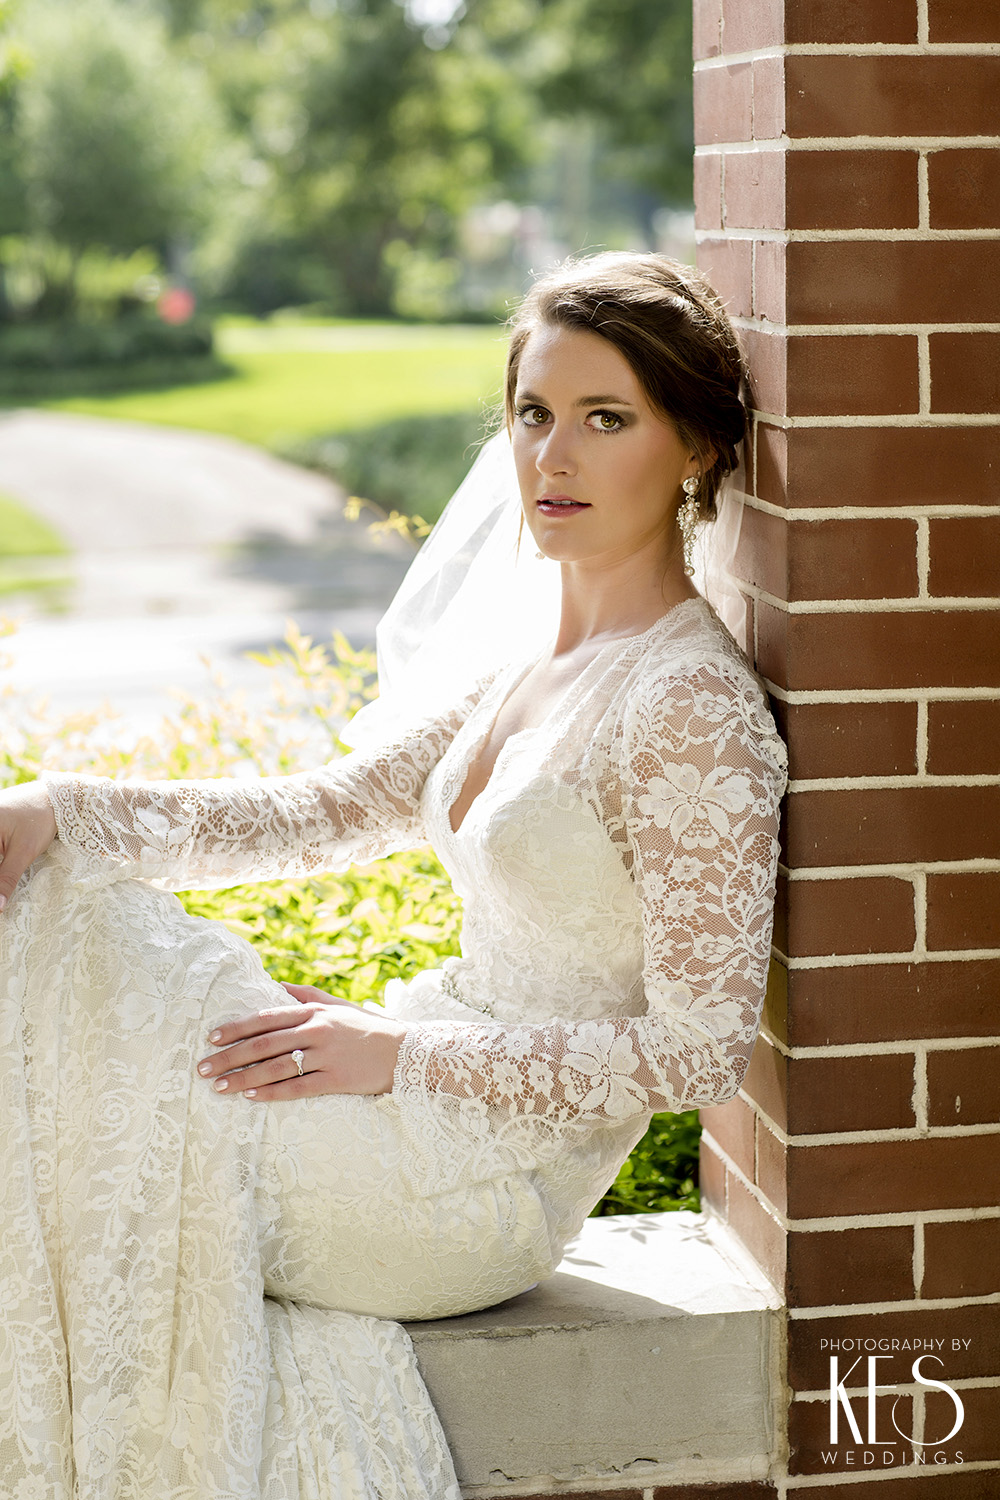 Andria_Bridals_Jonesboro_KES_Weddings_14.JPG